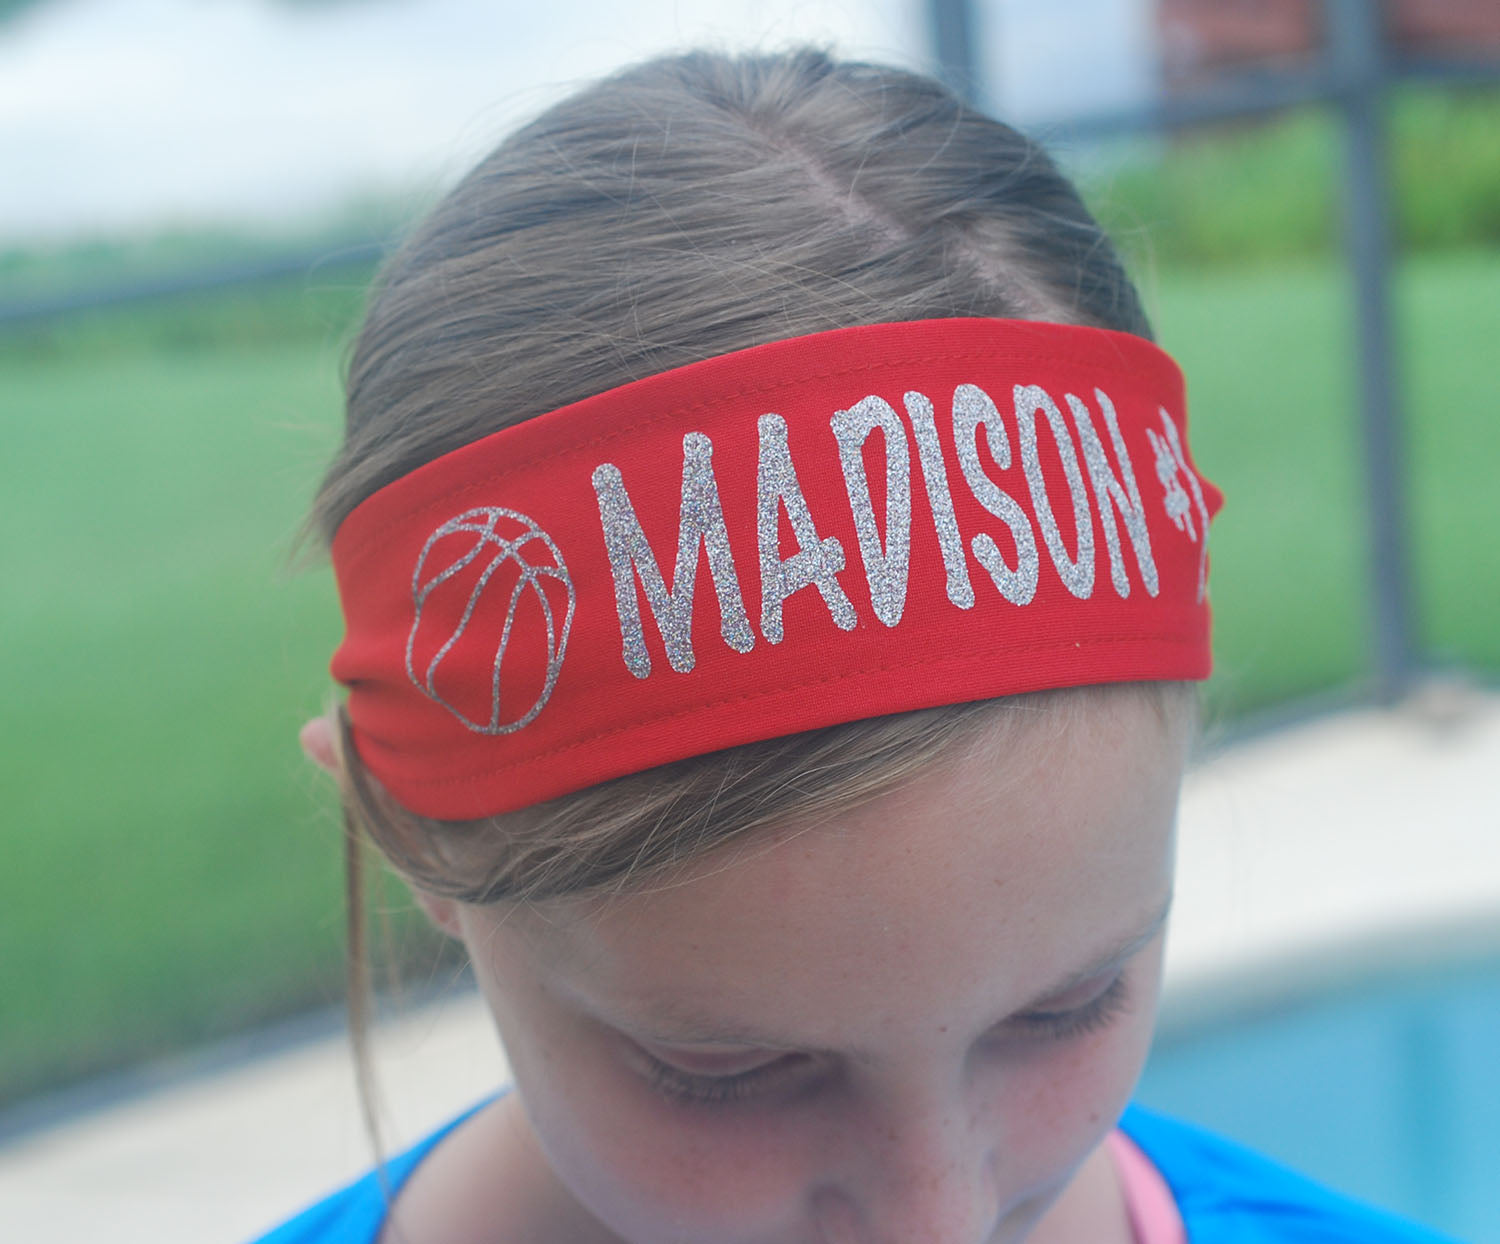 Custom Personalized FOOTBALL TIE Headband - Sparkle Letters!